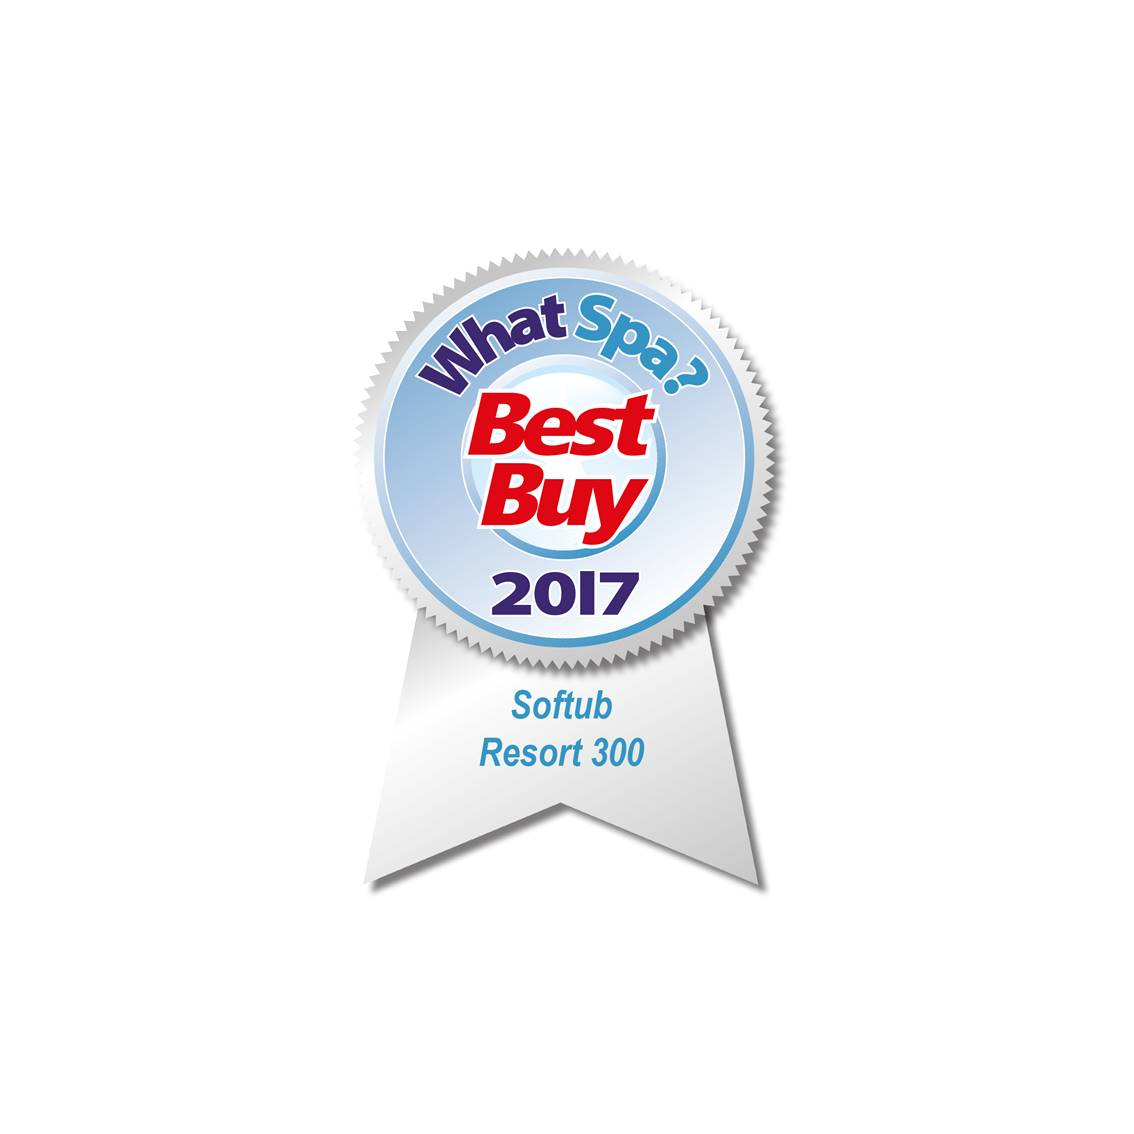 Best Buy Award 2017